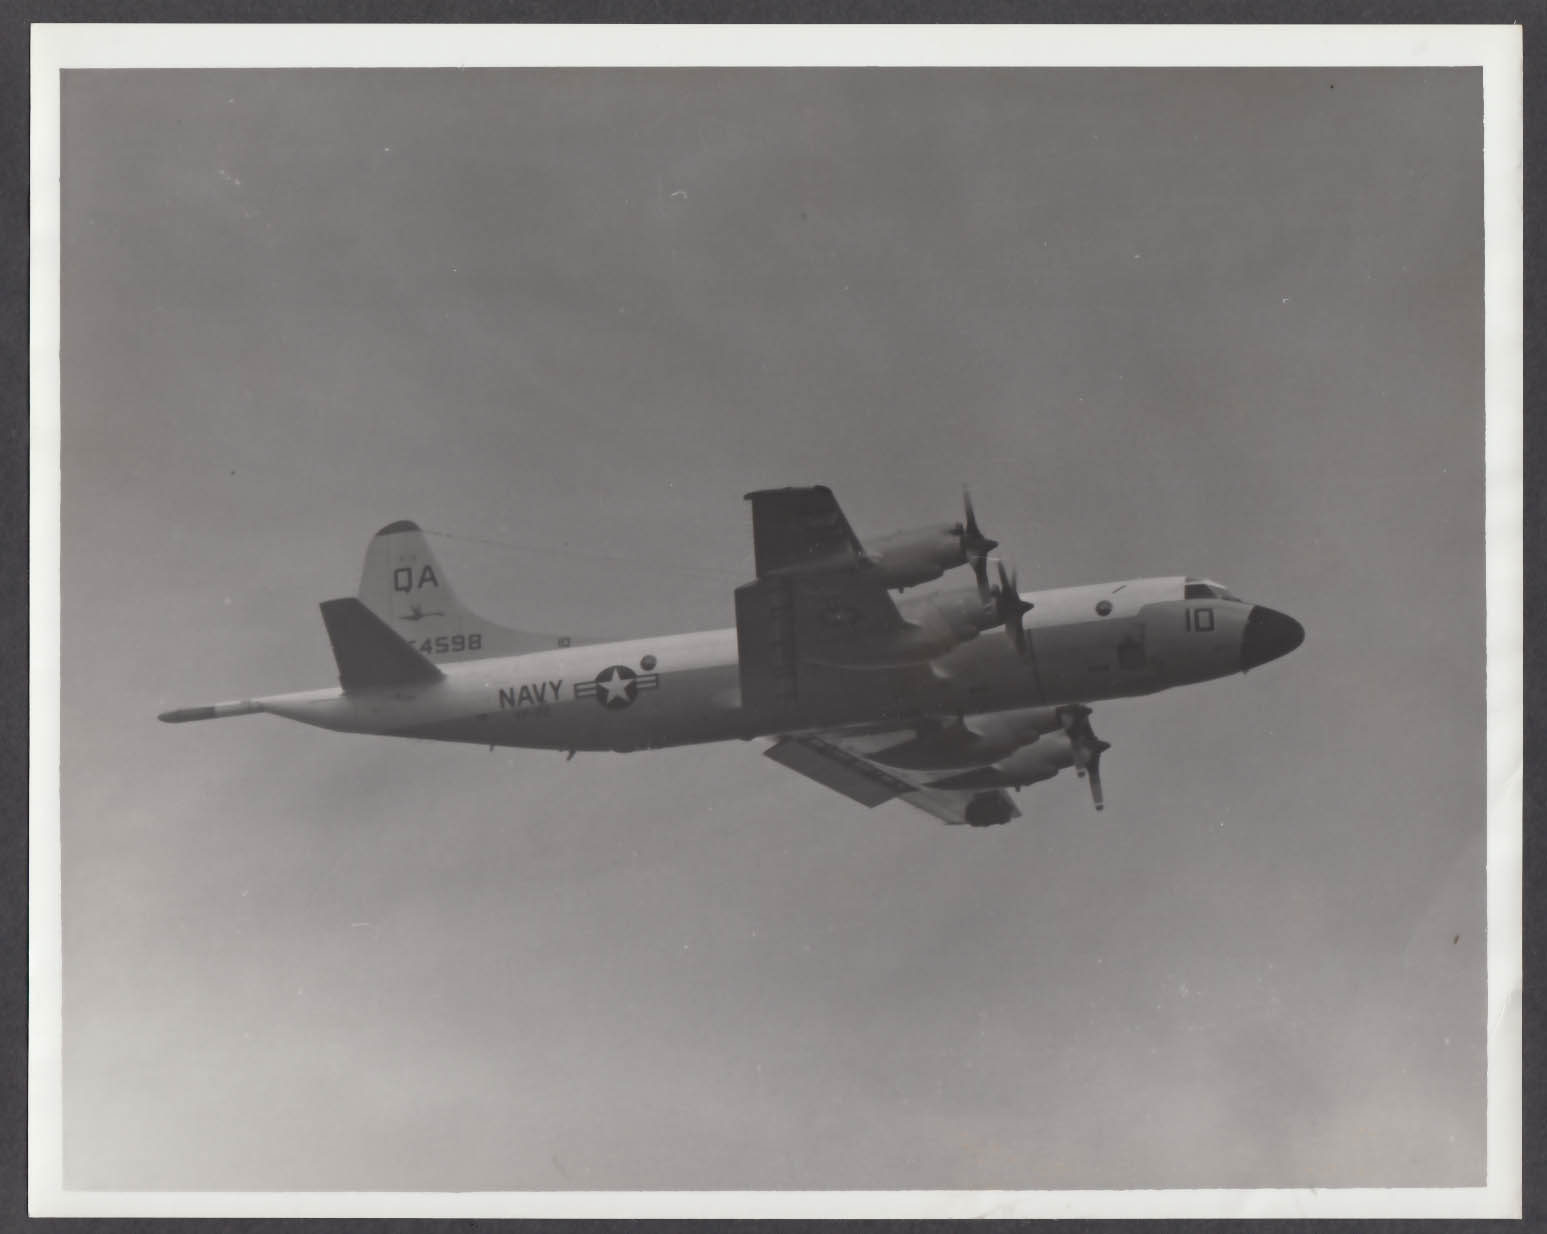 Image for US Navy P-3 Orion in flight QA 54598 8x10 photo 1972